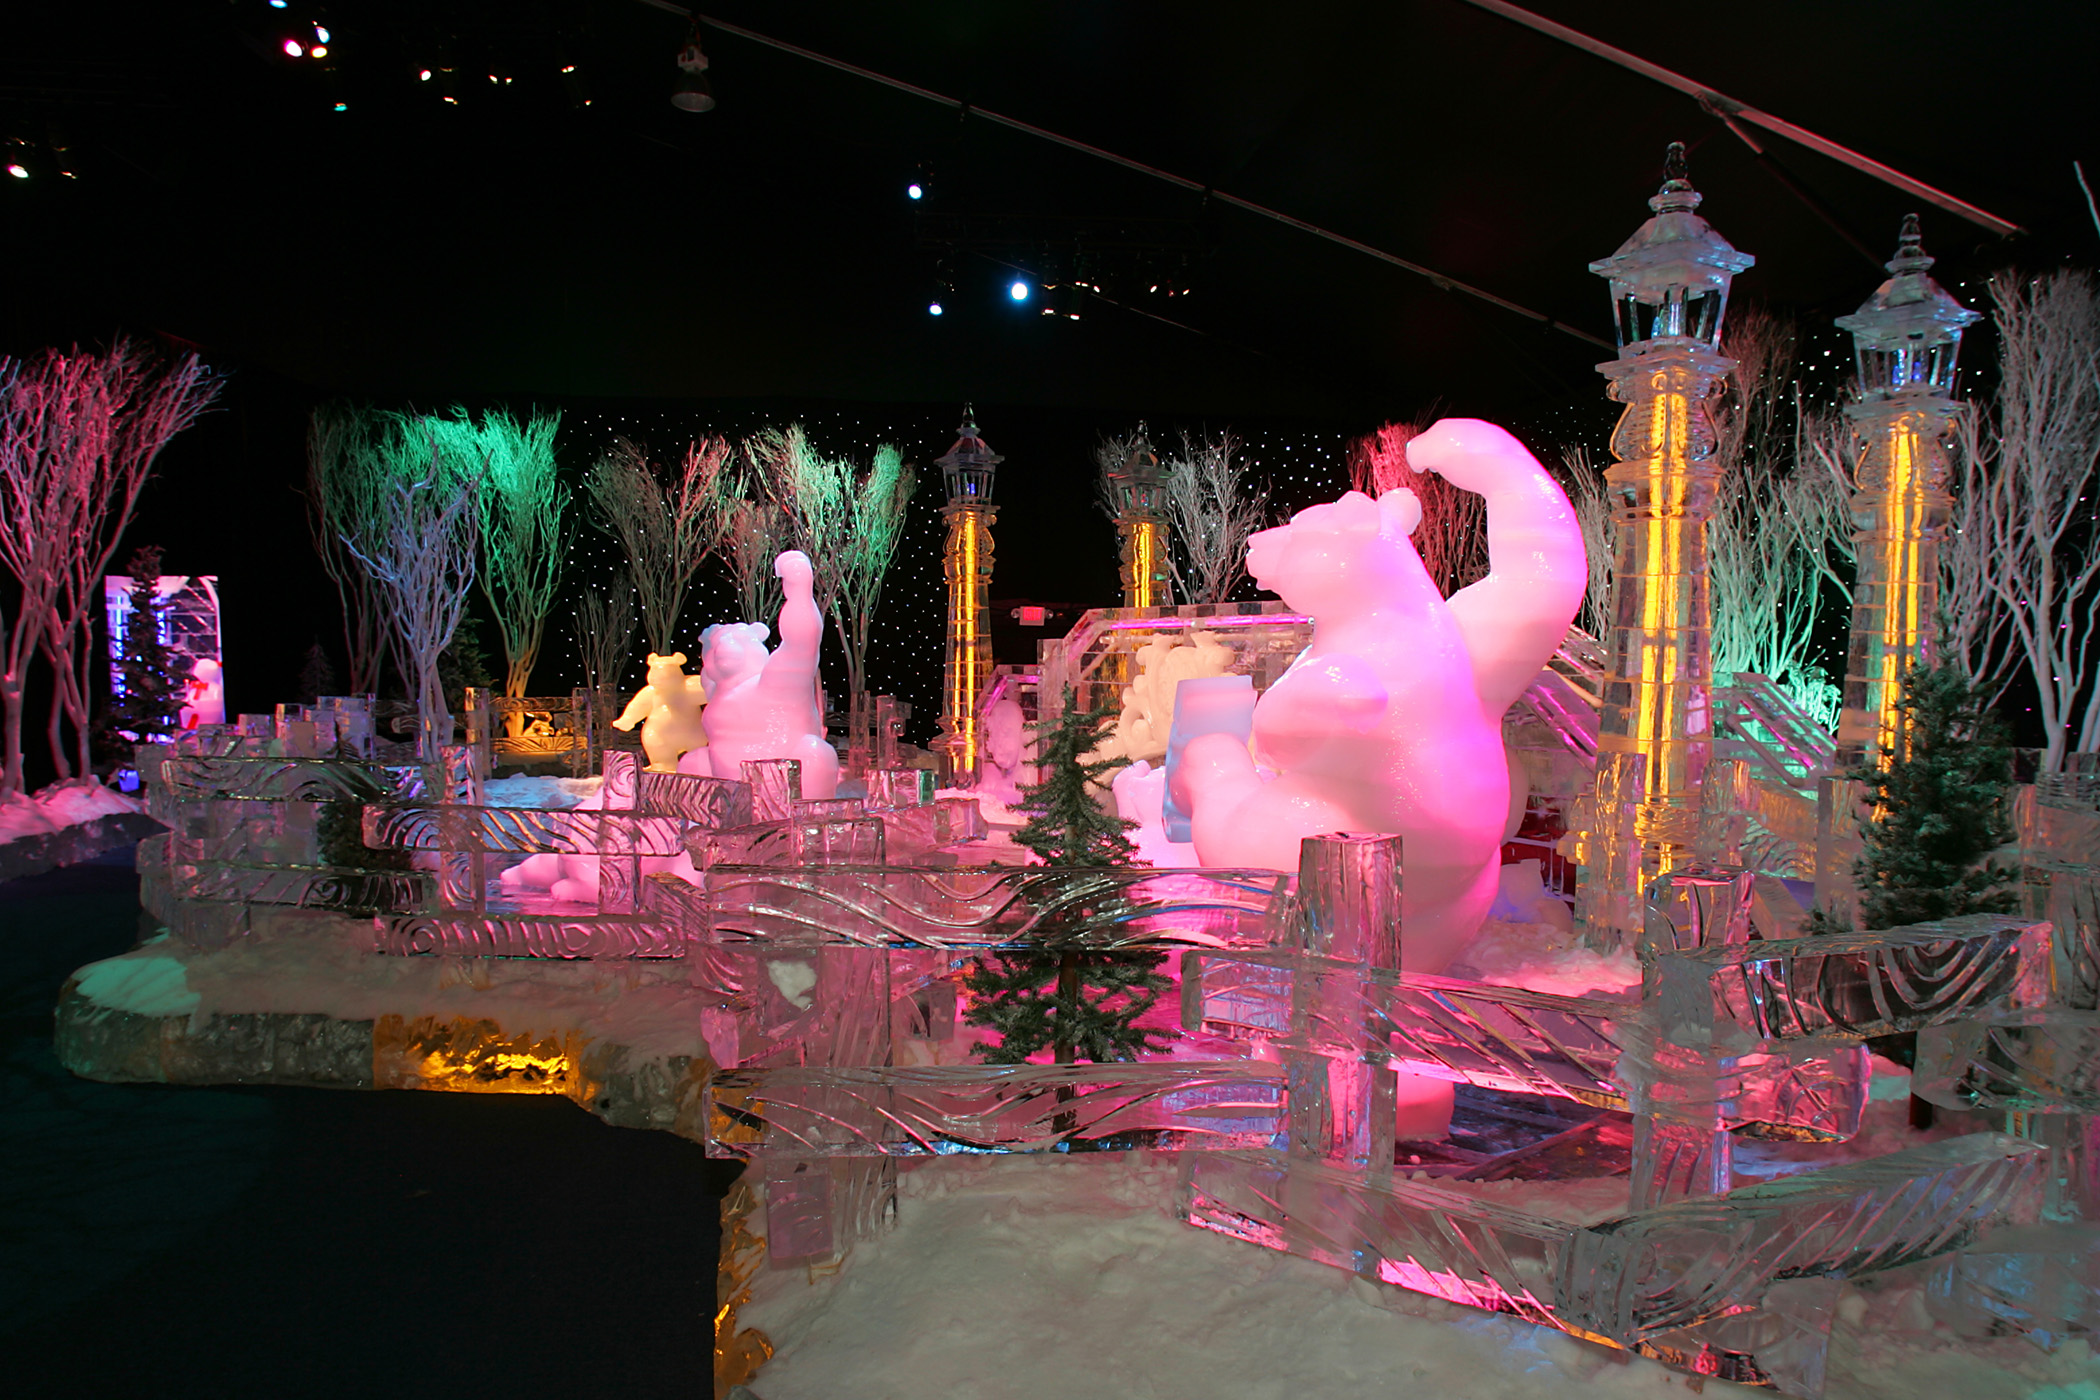 Gaylord Texan Resort Carves A Magical Winter Wonderland In Ice